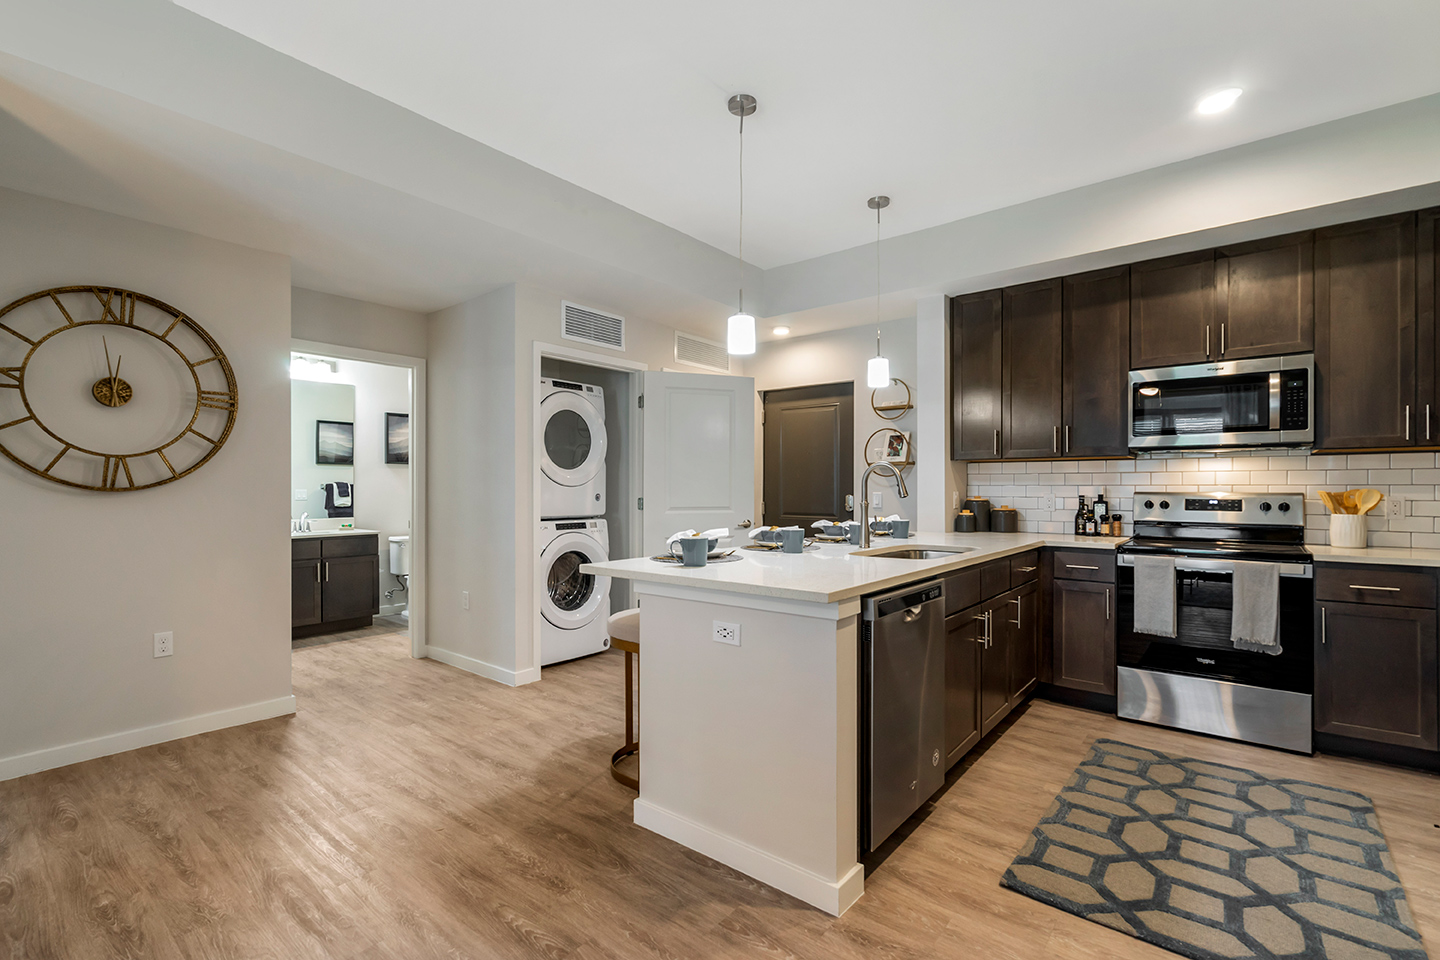 Model apartment kitchen with dark wood cabinets, wood-style plank flooring, and stainless steel appliances with view of washer and dryer machines